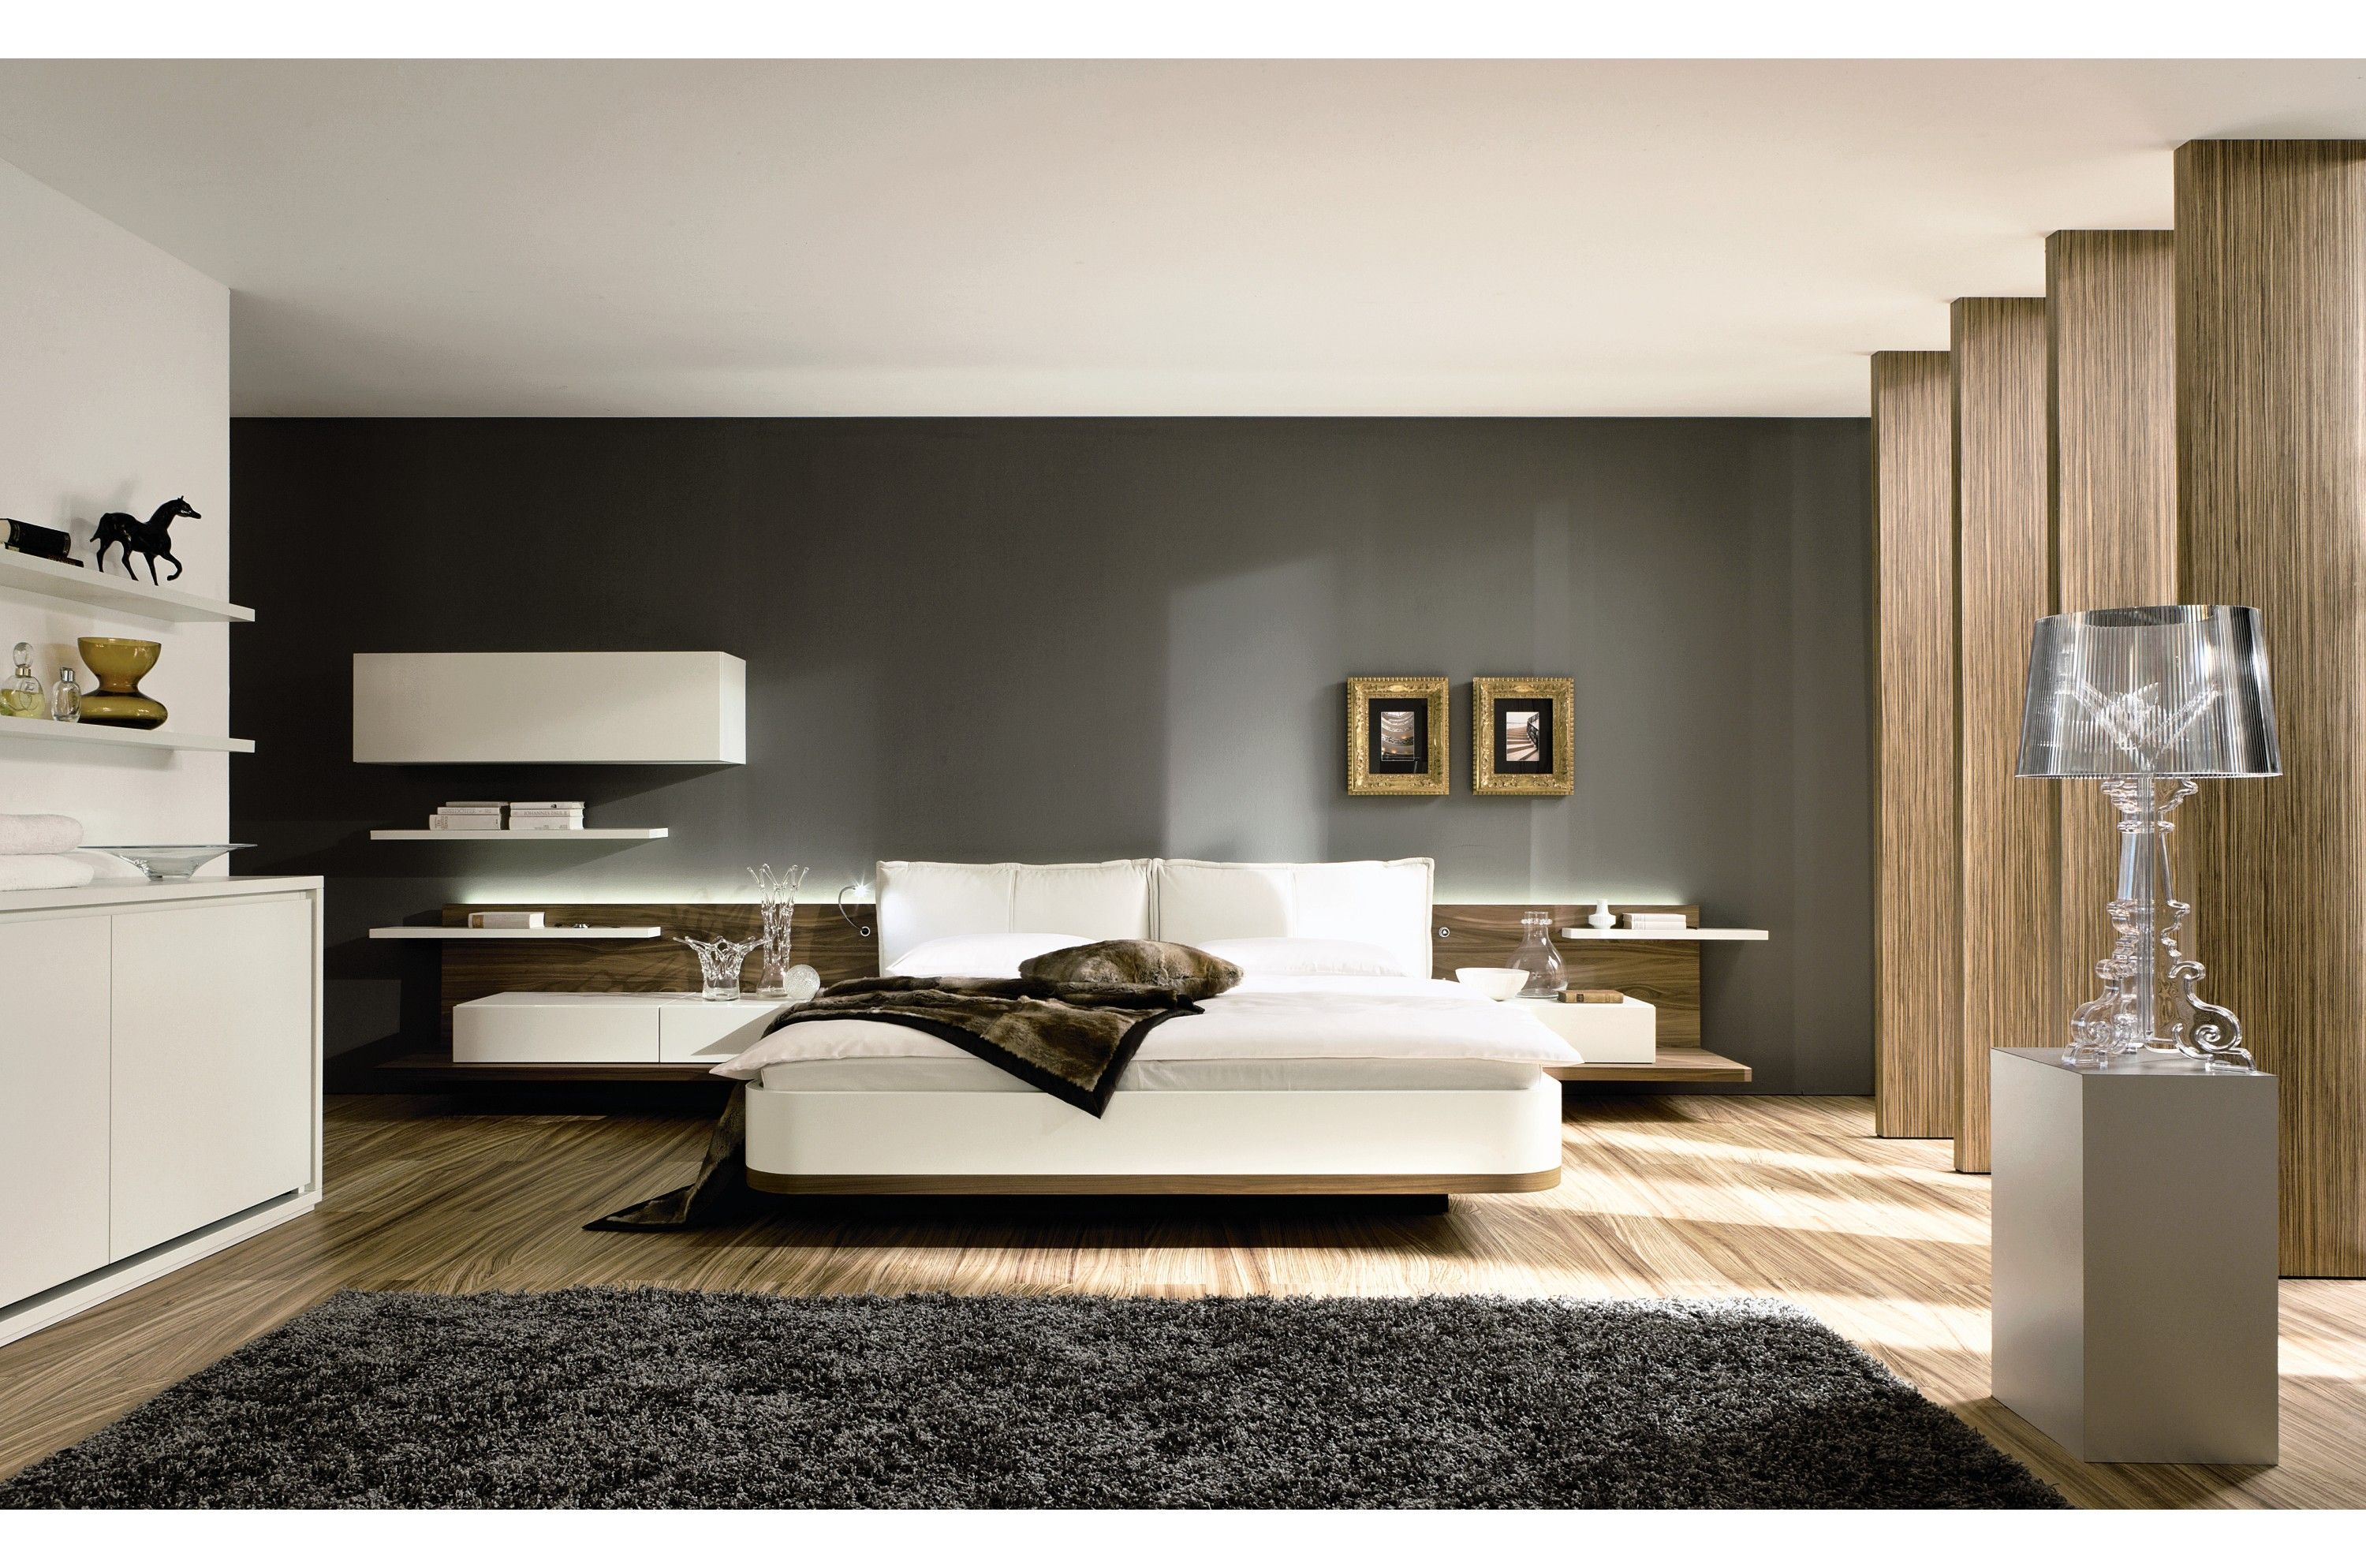 Bedroom Modern Modern Bedroom Innovation Bedroom Ideas Interior Design And Many